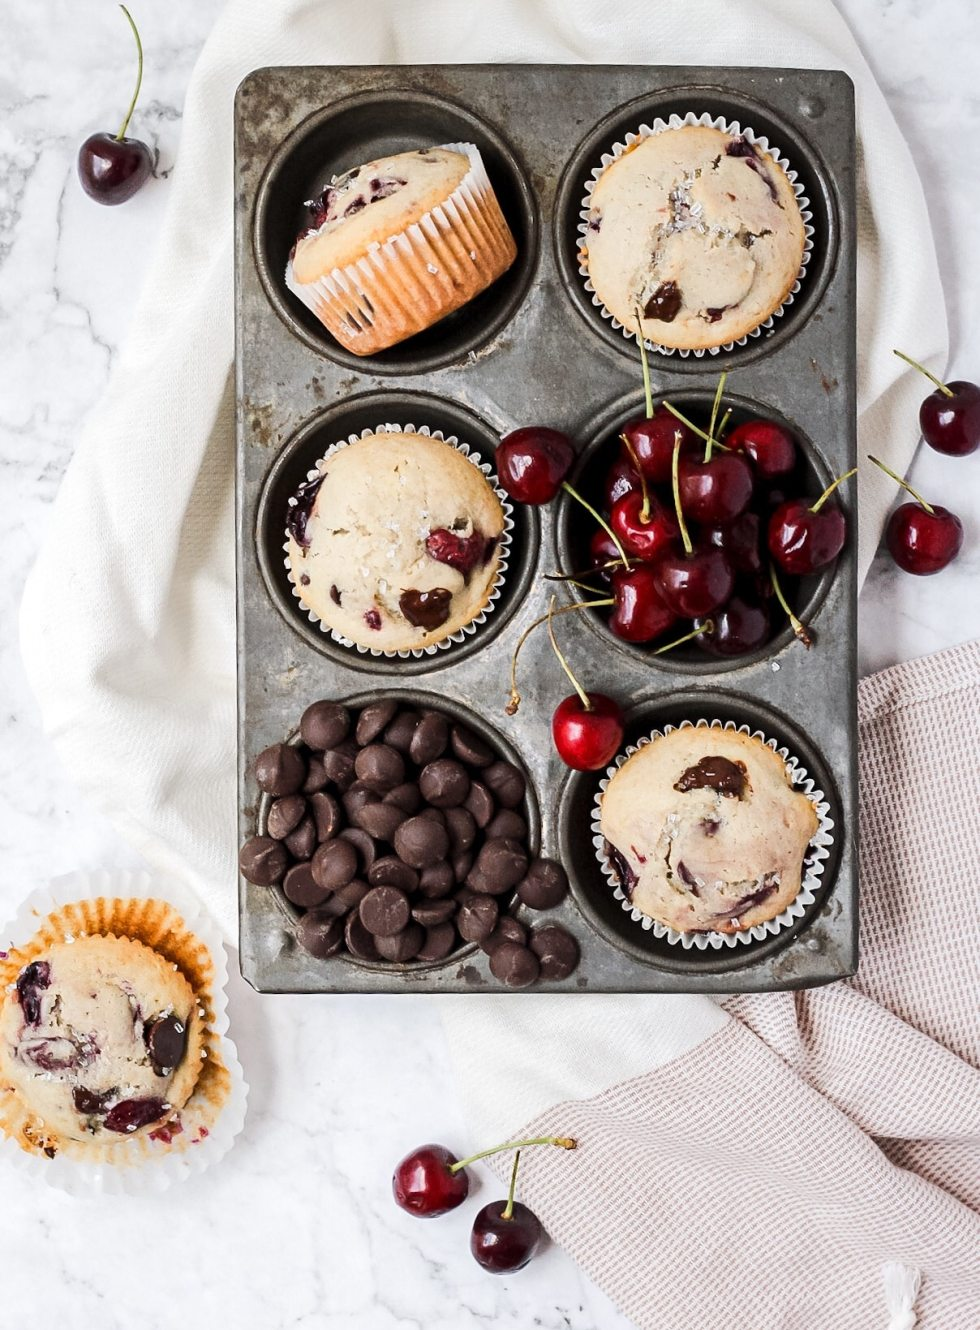 Chocolate cherry muffins in muffin tin with extra cherries and chocolate chips